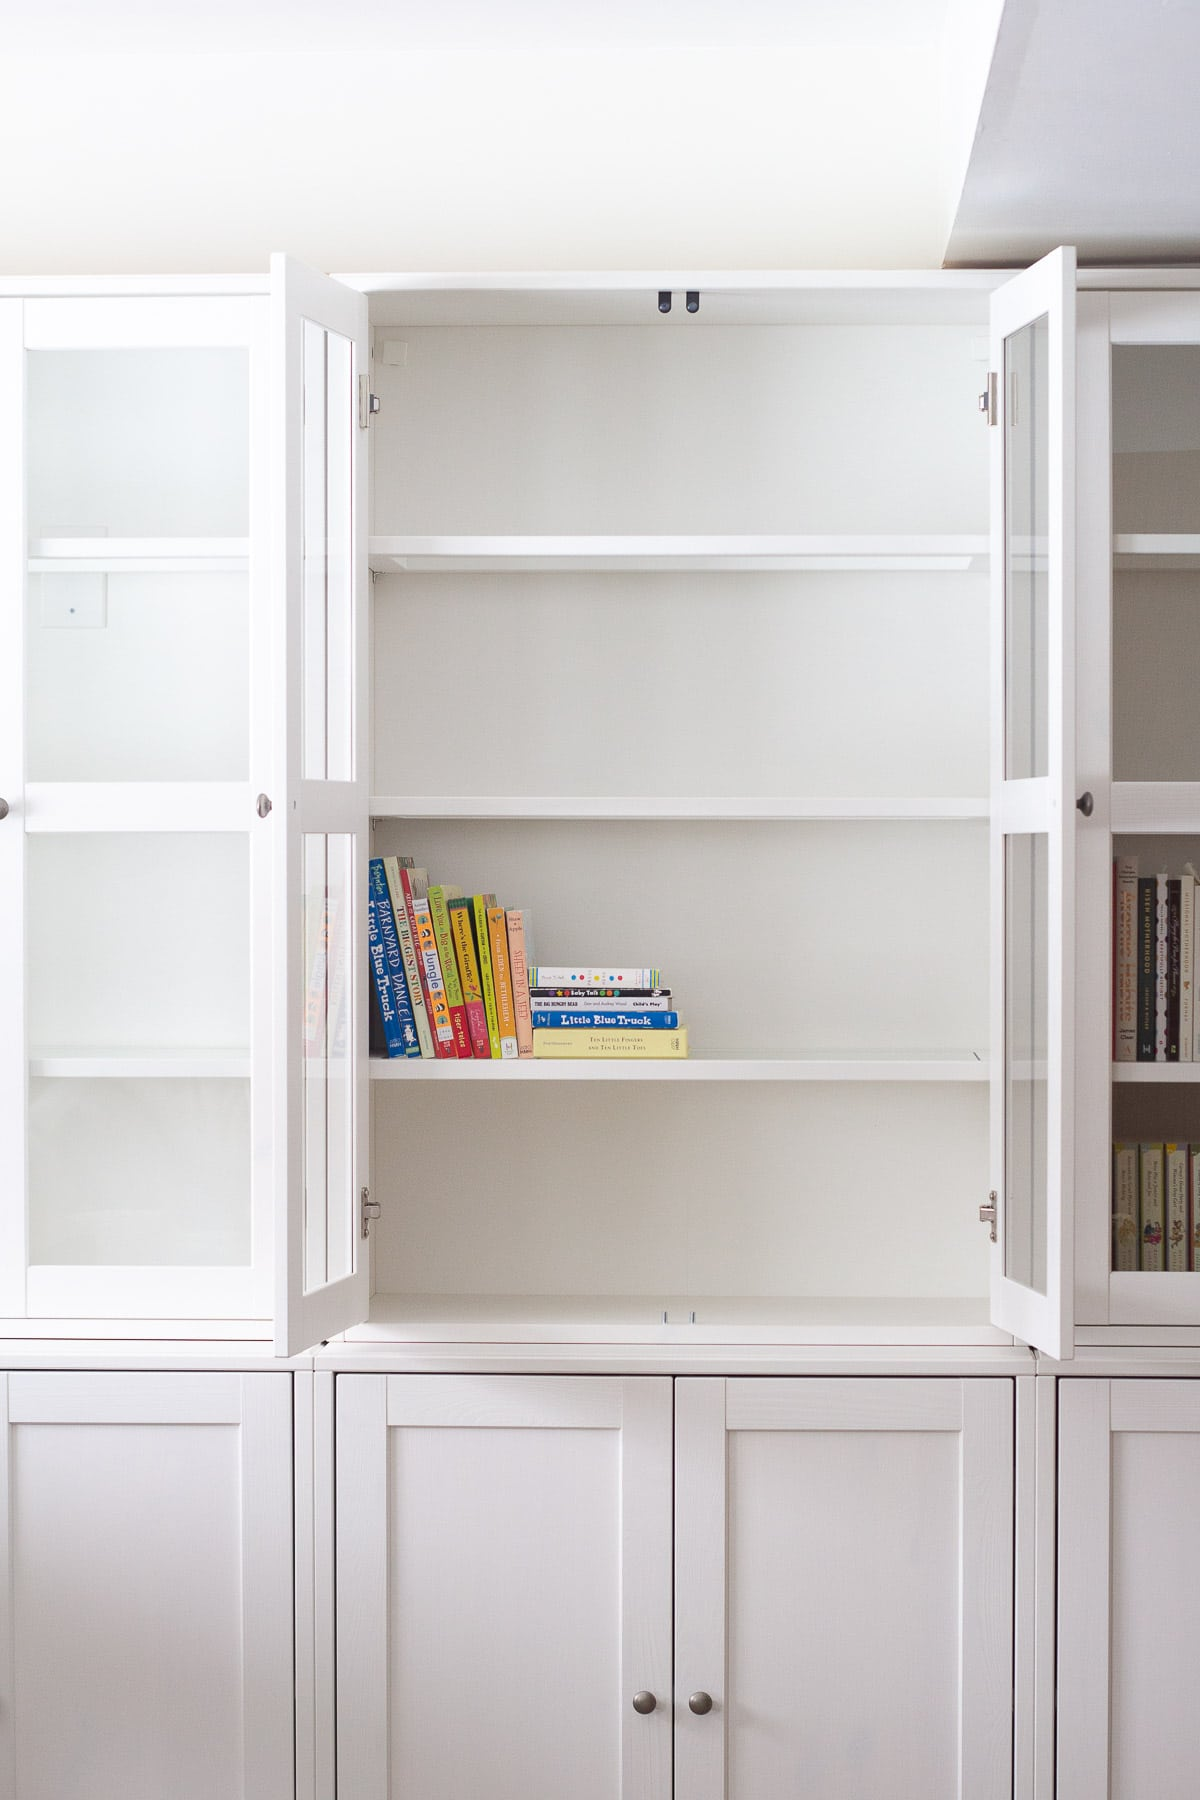 Storing board books in IKEA built-ins.